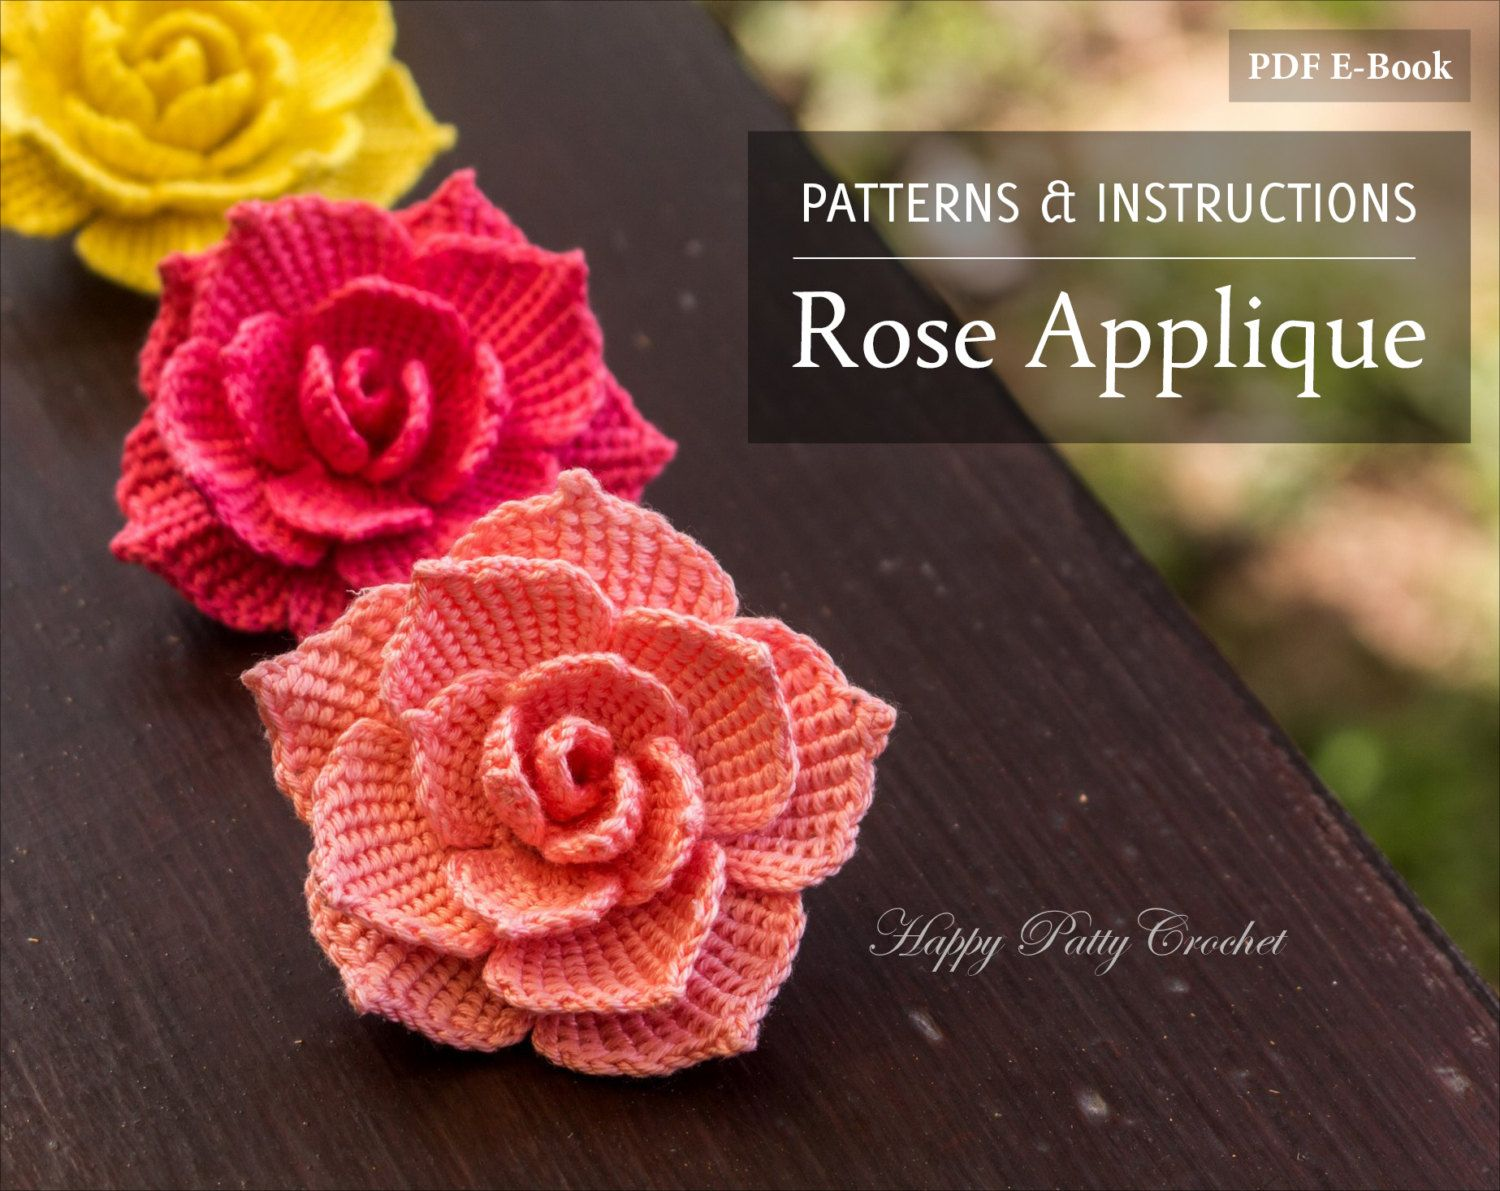 Crochet rose pattern crochet flower pattern for a rose applique inside youll find a crochet pattern diagram for a rose flower applique this crochet rose is very versatile and fun to make designed to work as an appliqu ccuart Images